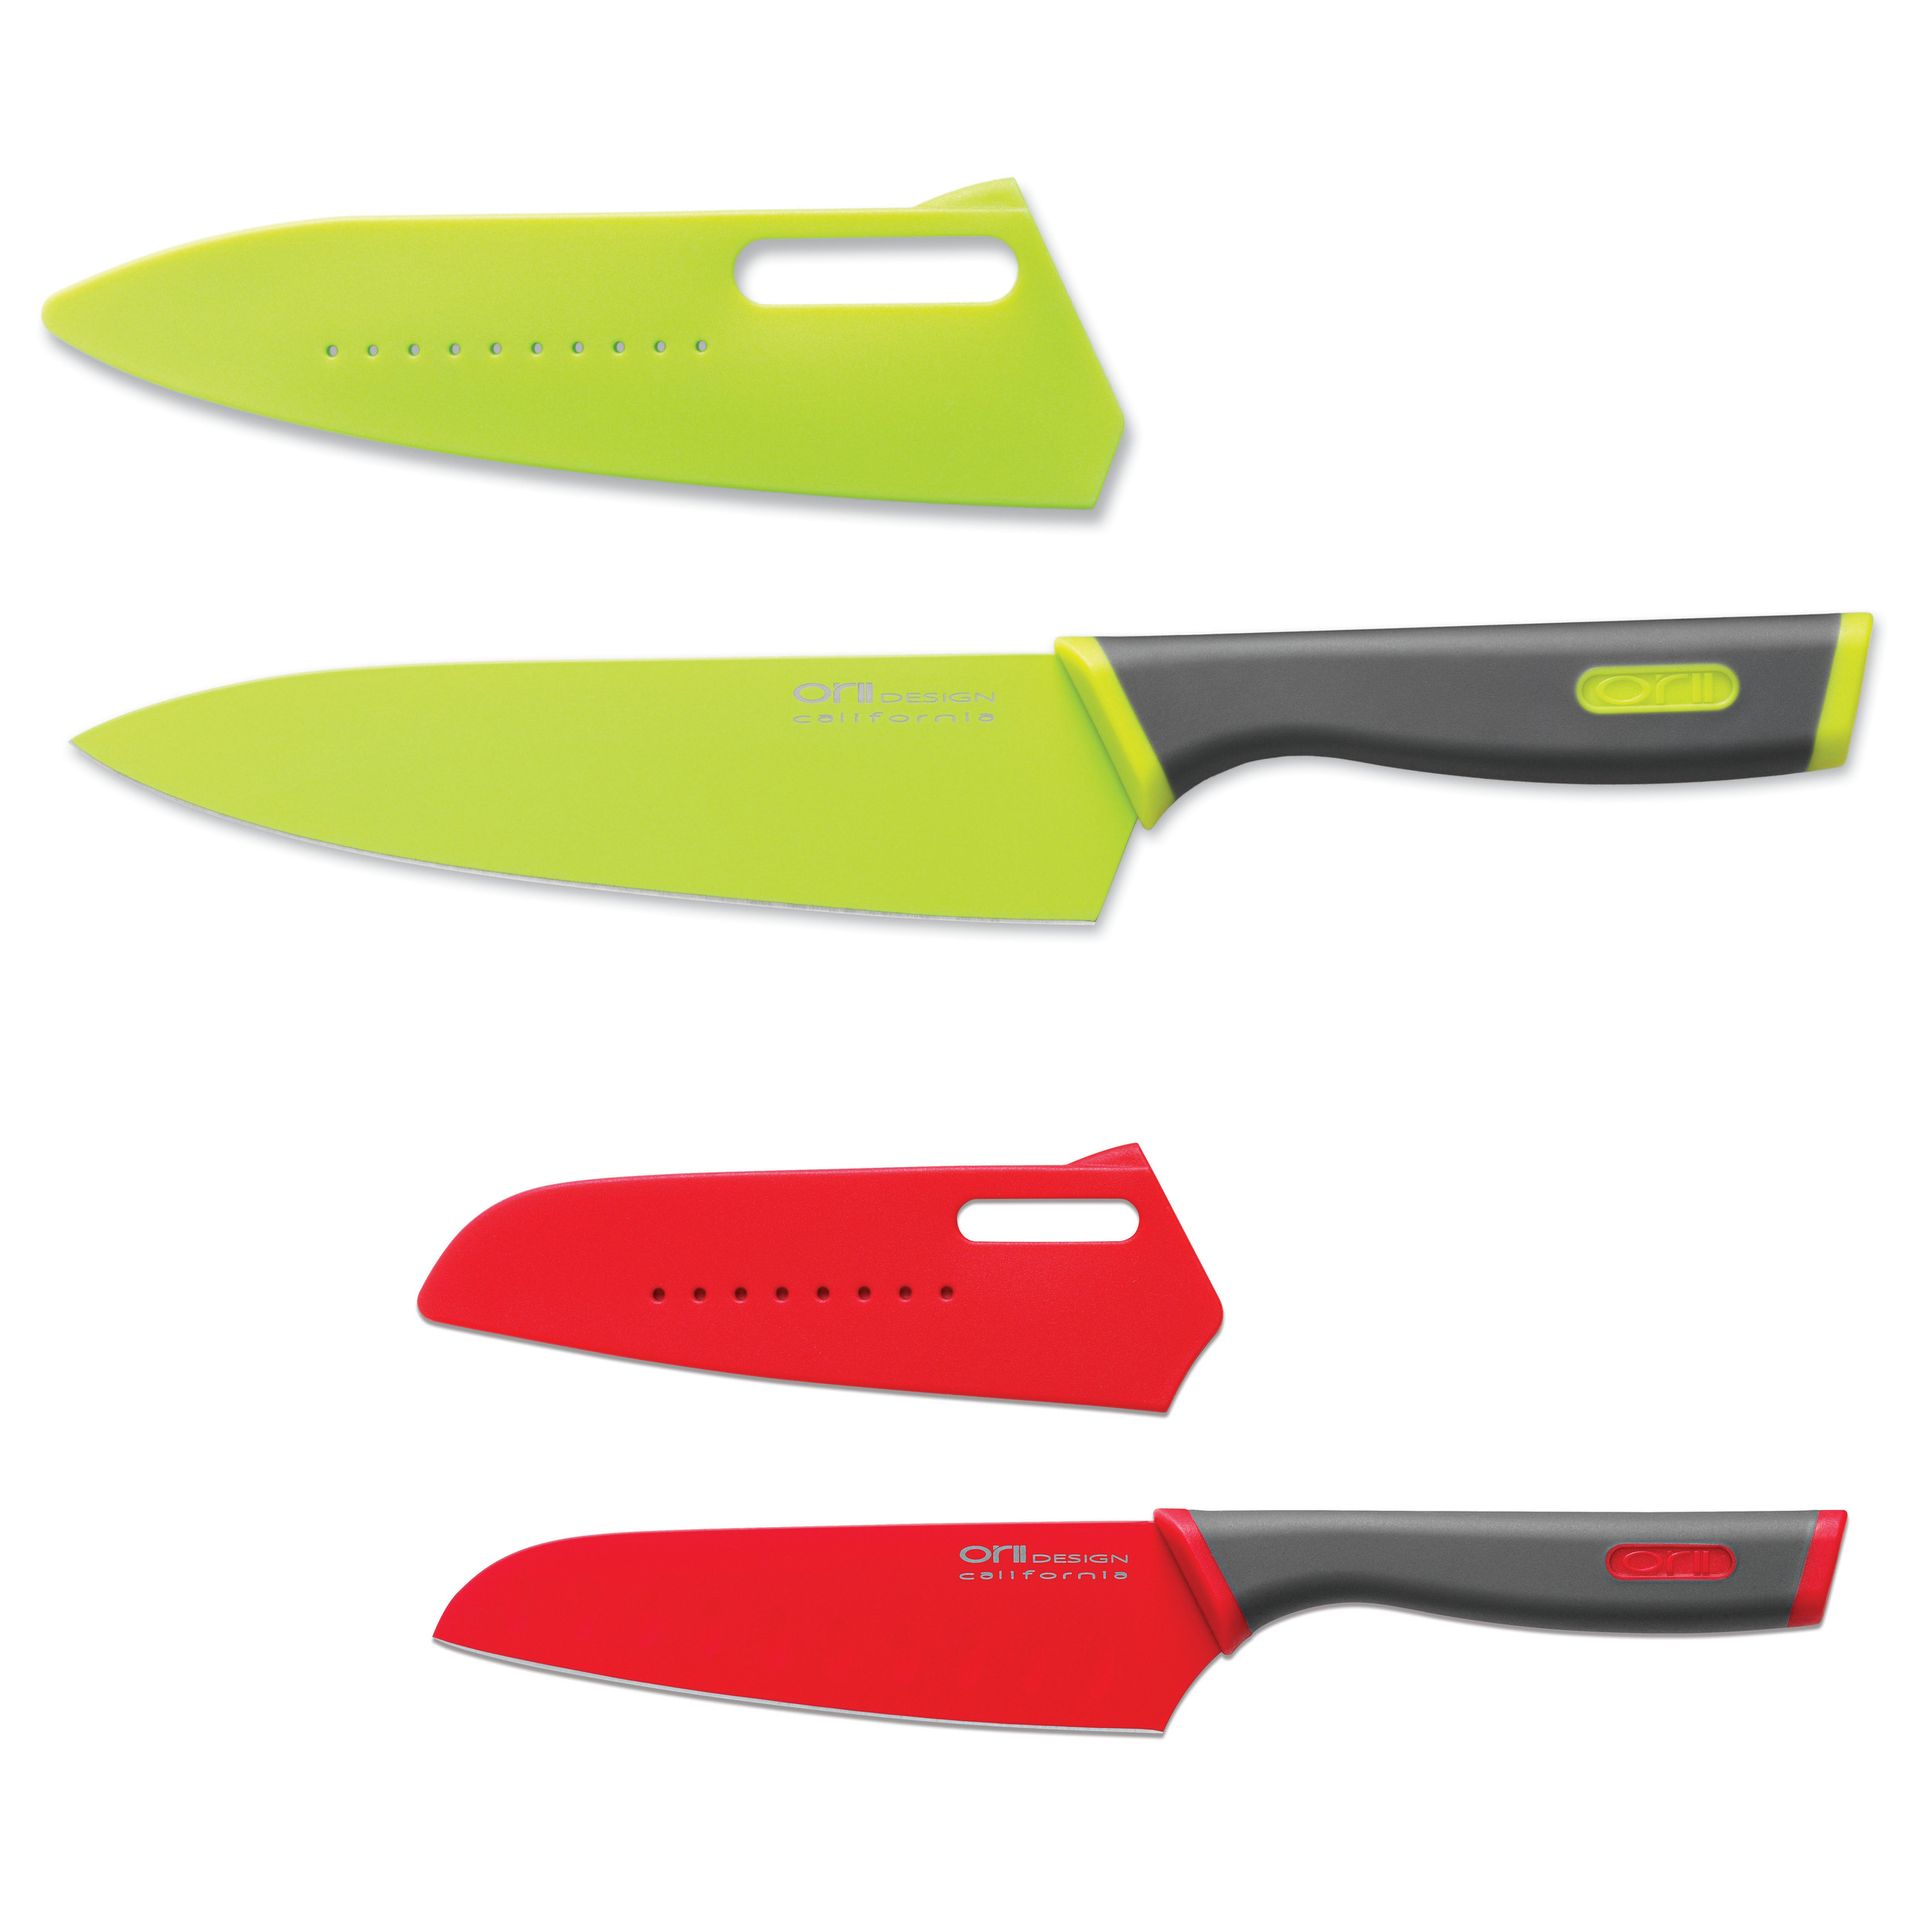 Orii 4PC STARTER PREP KNIFE SET